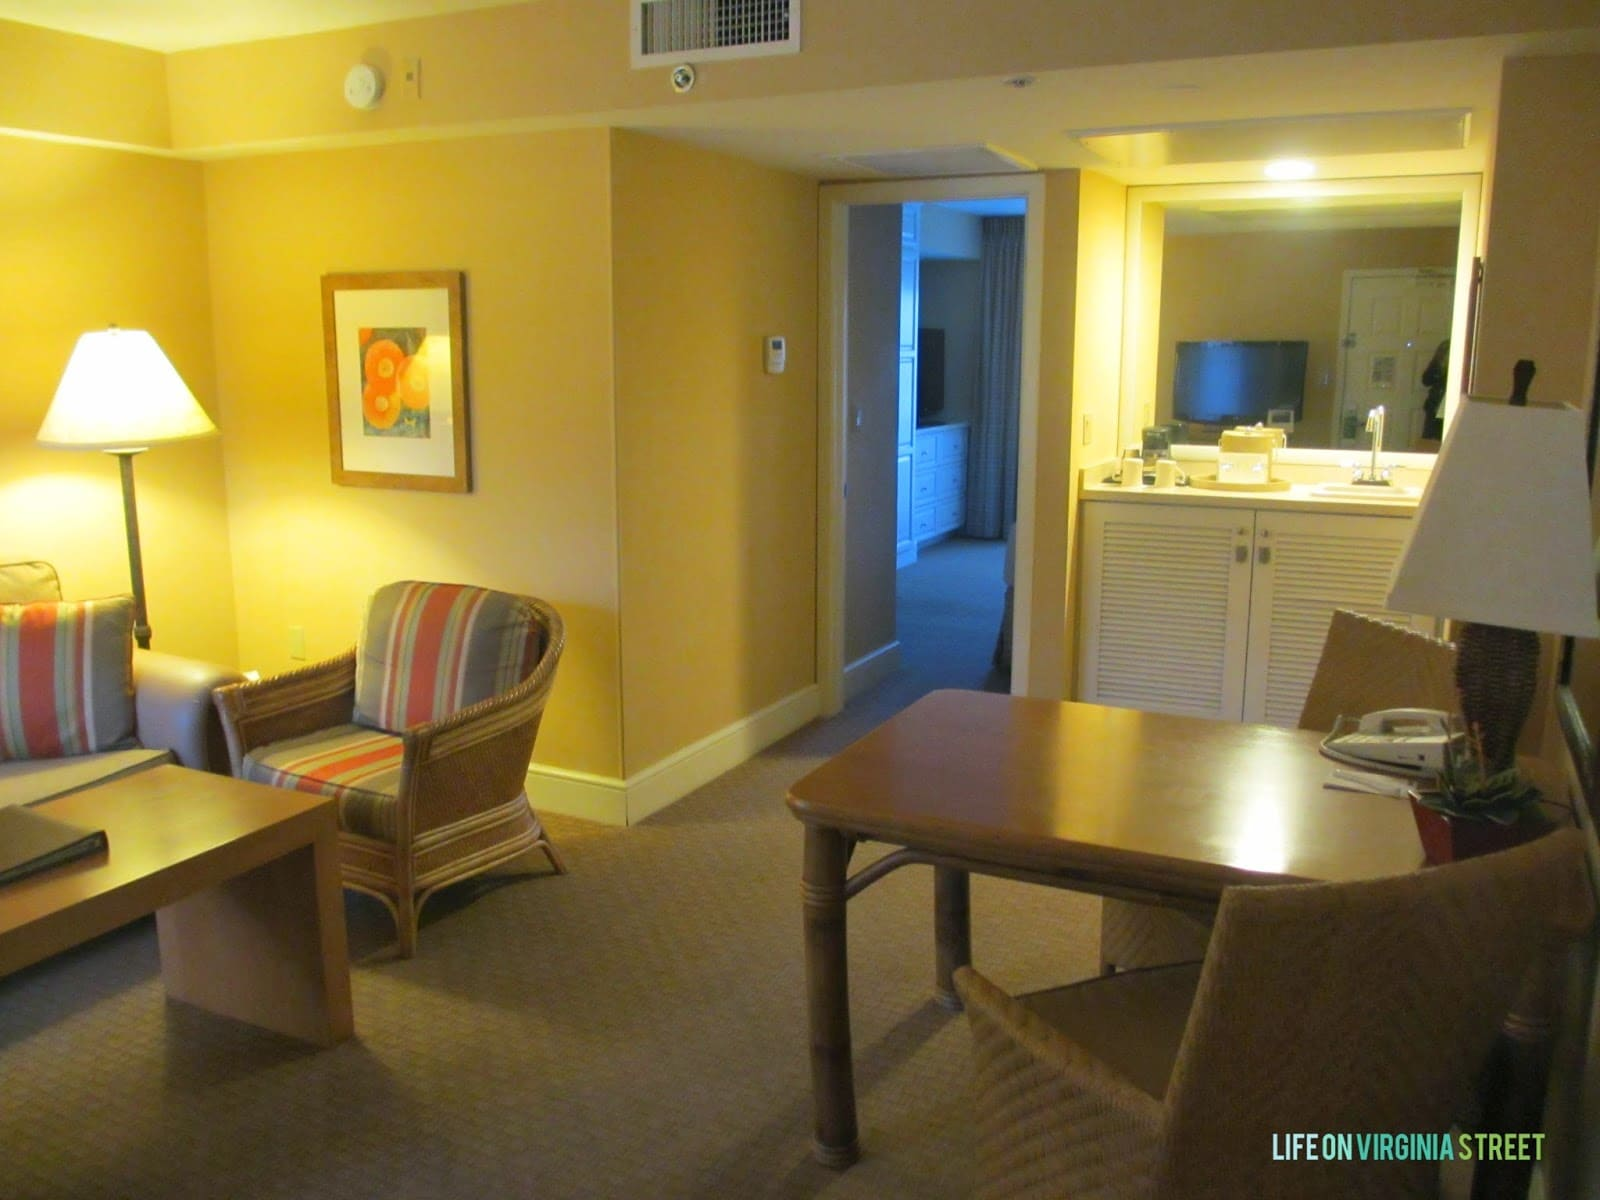 A small desk inside the hotel room.